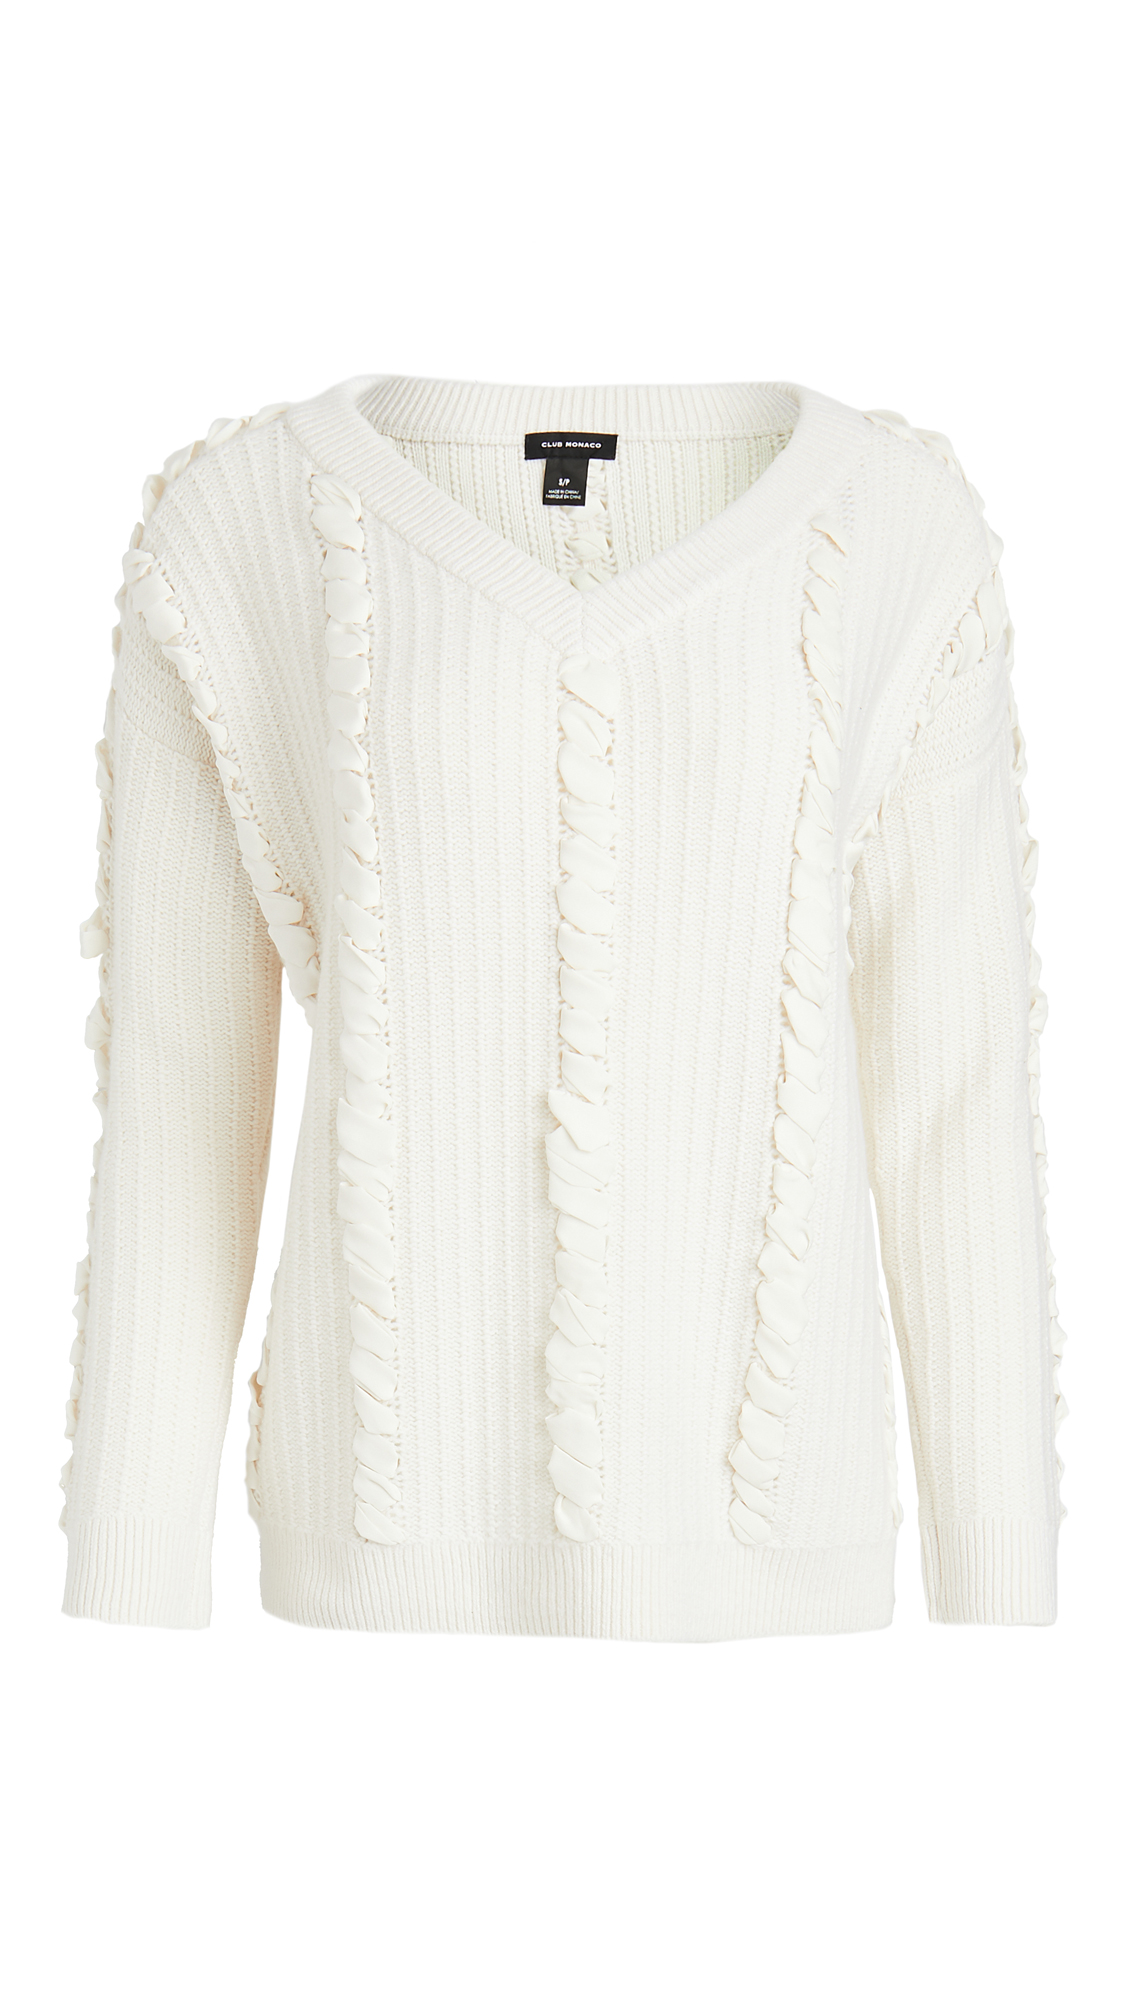 Club Monaco Woven Detail Sweater